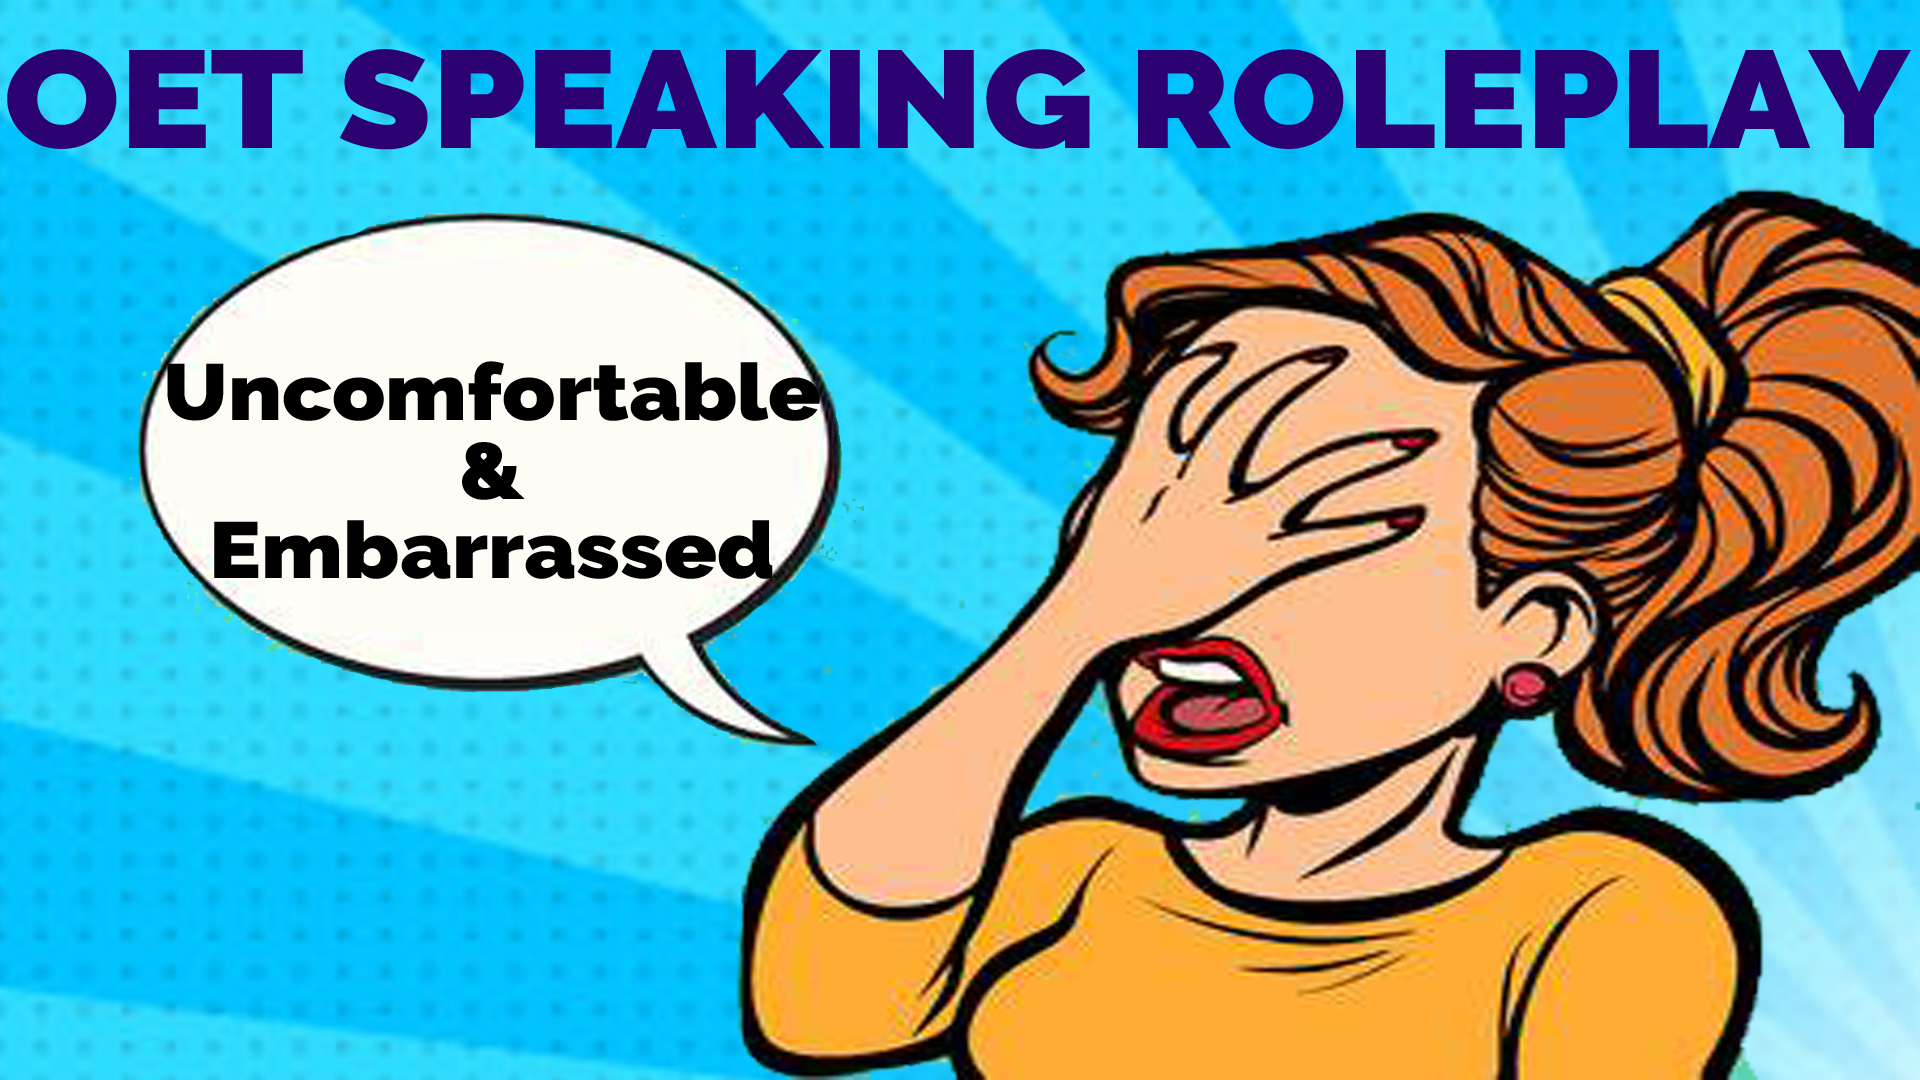 OET SPEAKING ROLEPLAY - UNCOMFORTABLE AND EMBARRASSED PATIENT